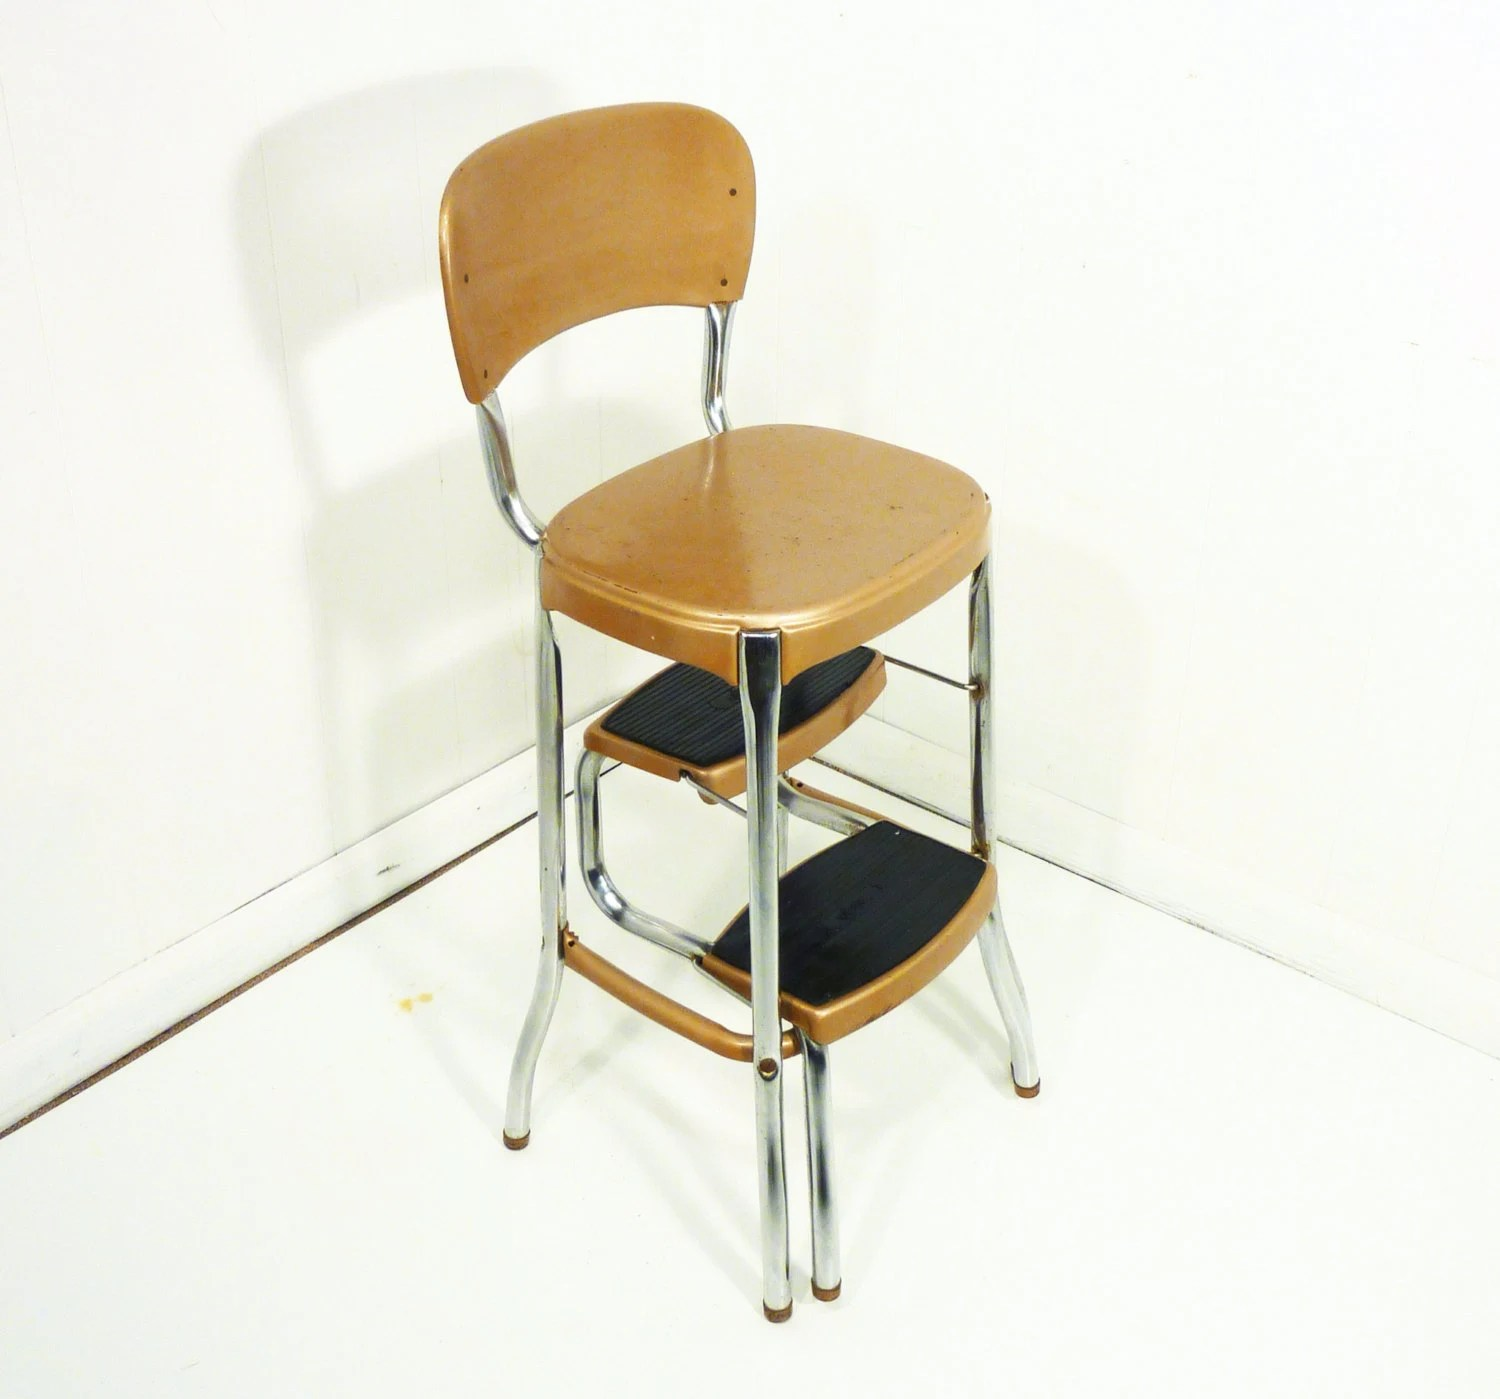 retro chair step stool dining room chairs upholstered with arms 50s vintage kitchen